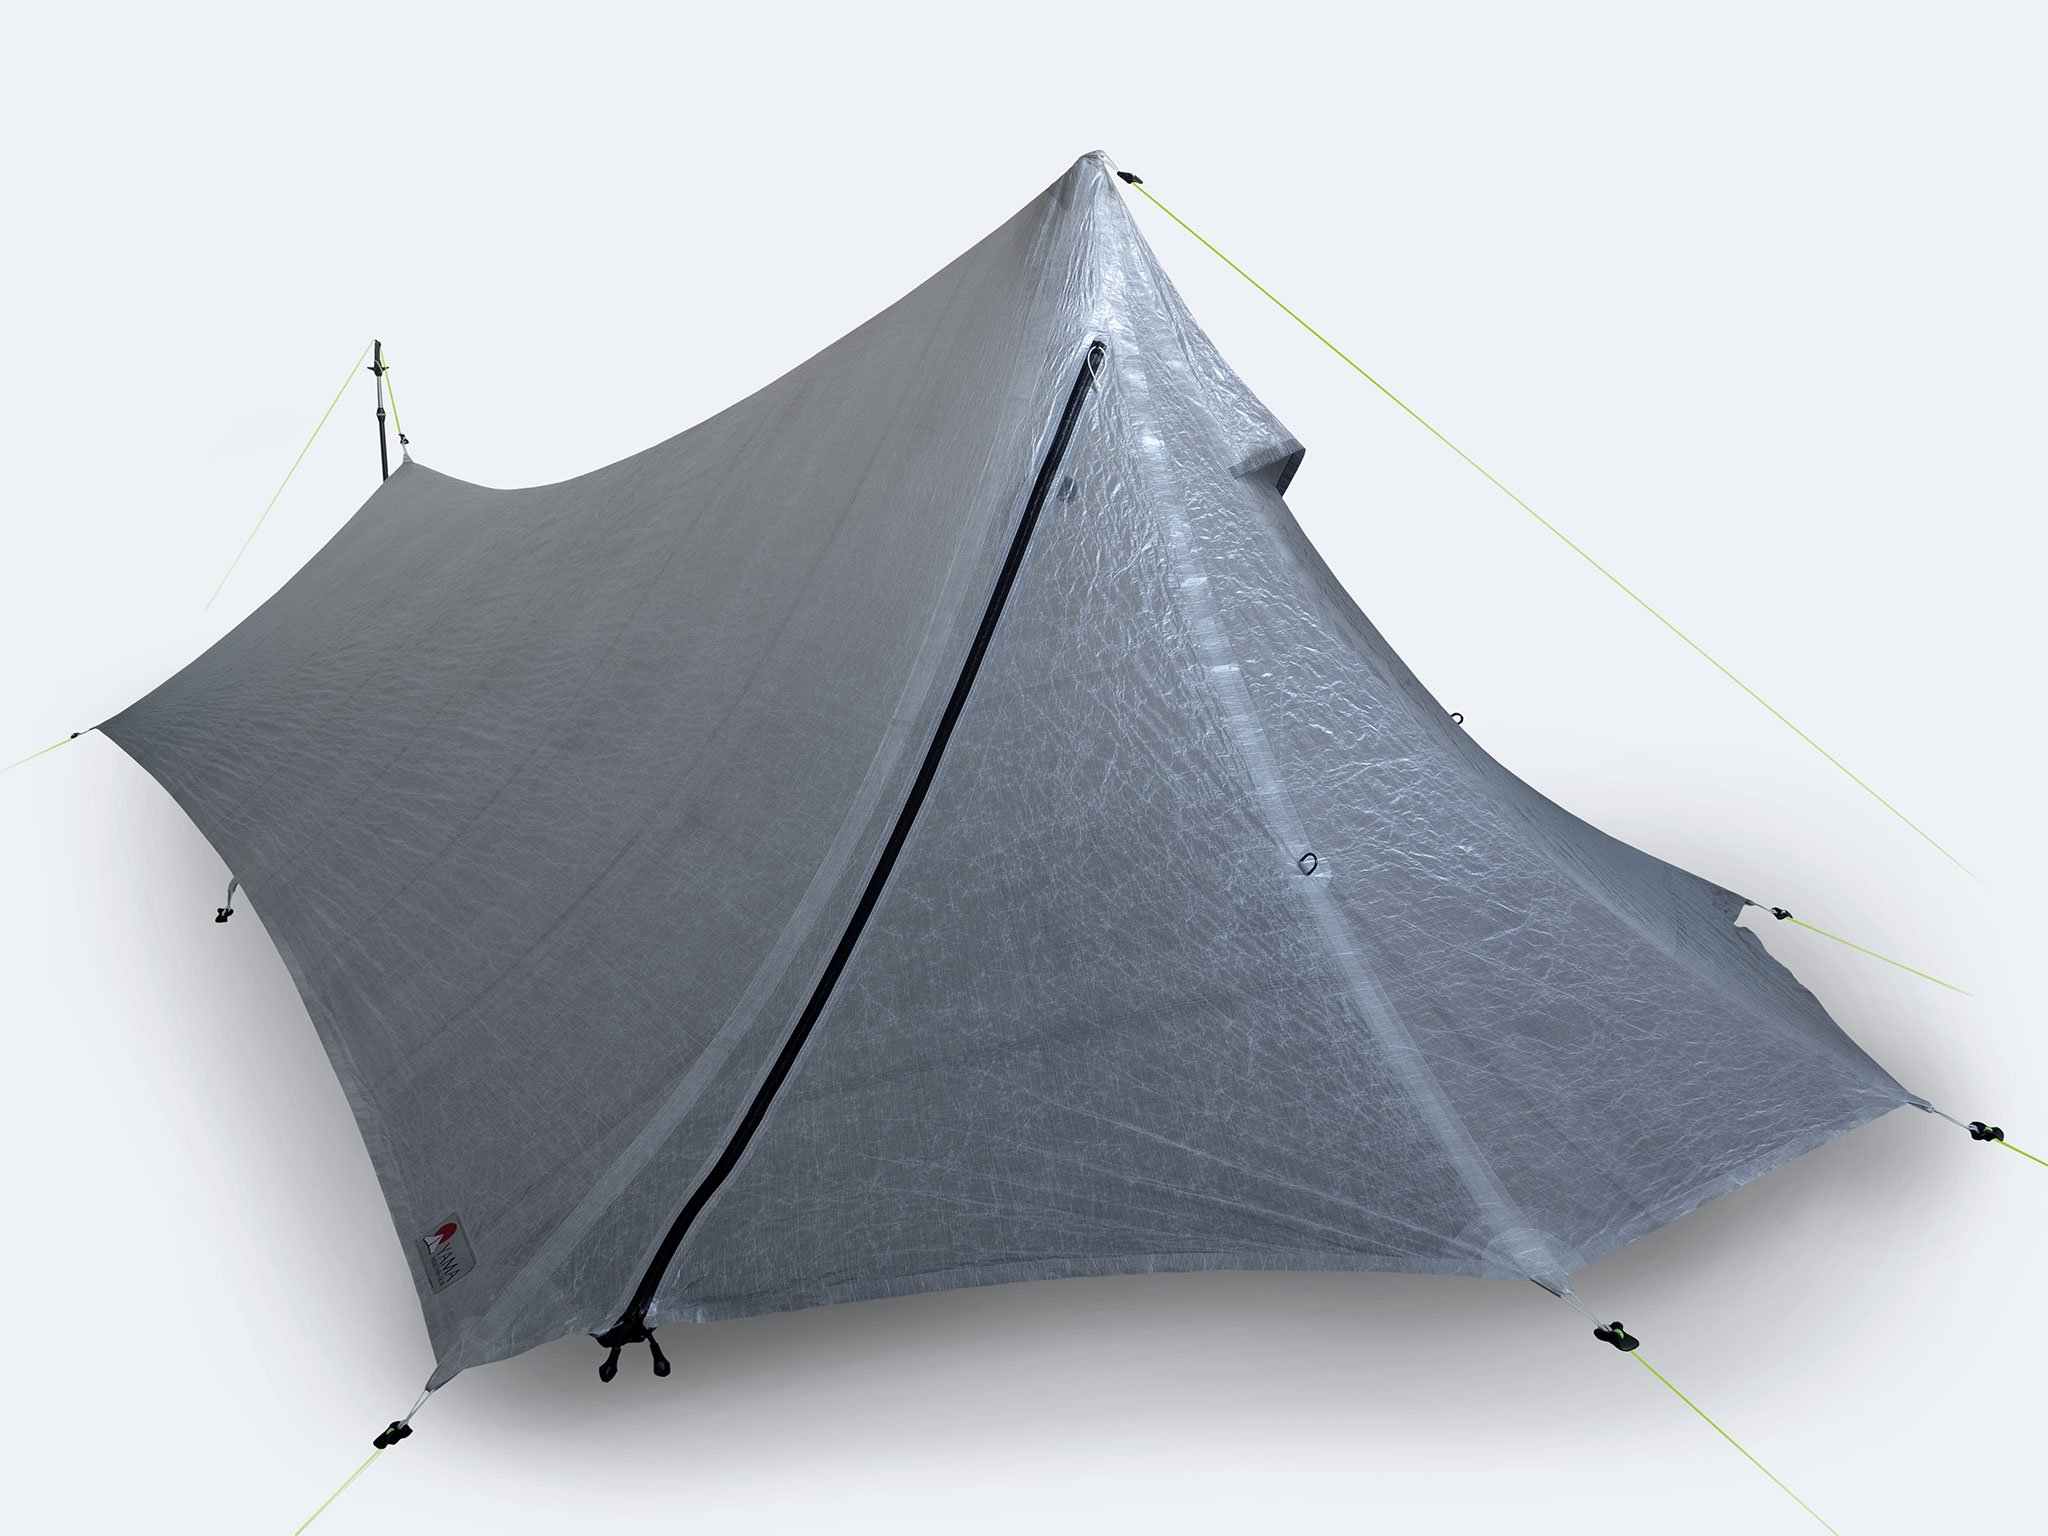 photo: YAMA Mountain Gear 1P Cirriform Tarp - Dyneema tarp/shelter